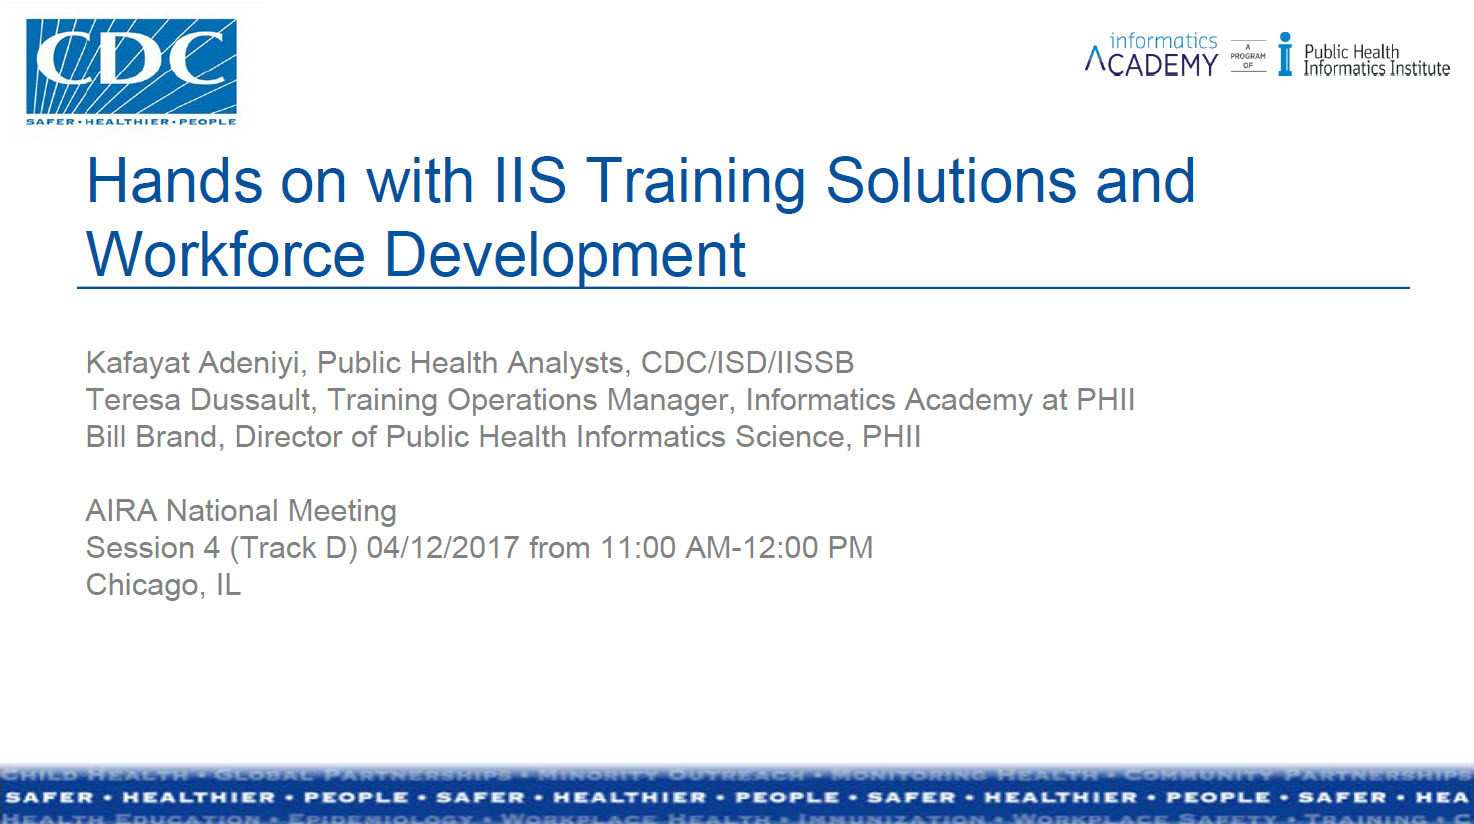 Hands-On with IIS Training Solutions & Workforce Development